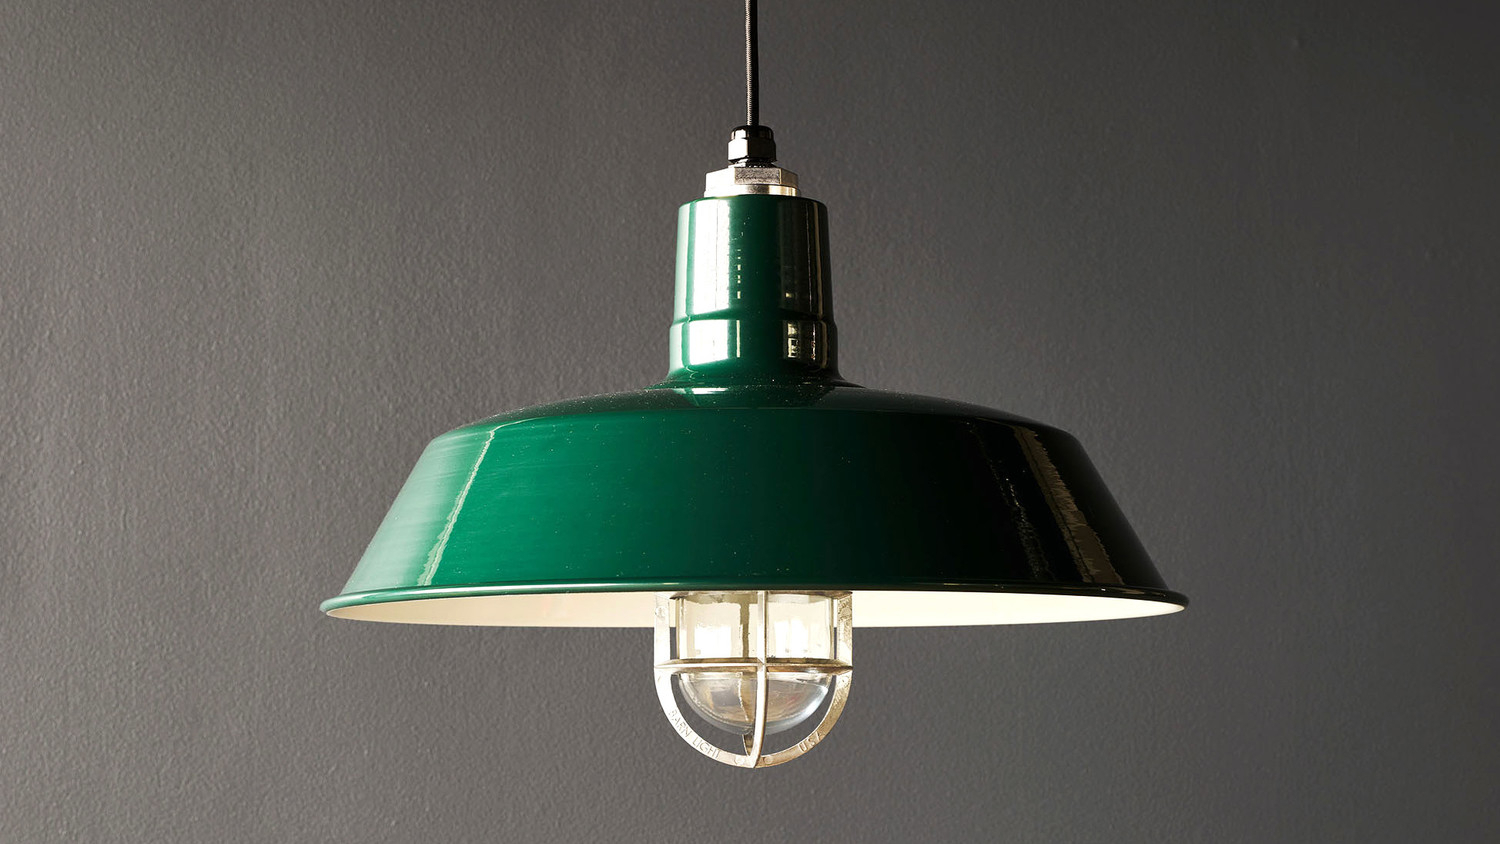 New Deal Alert: Abordale 1-Light Single Dome Pendant with regard to Abordale 1-Light Single Dome Pendants (Image 24 of 30)